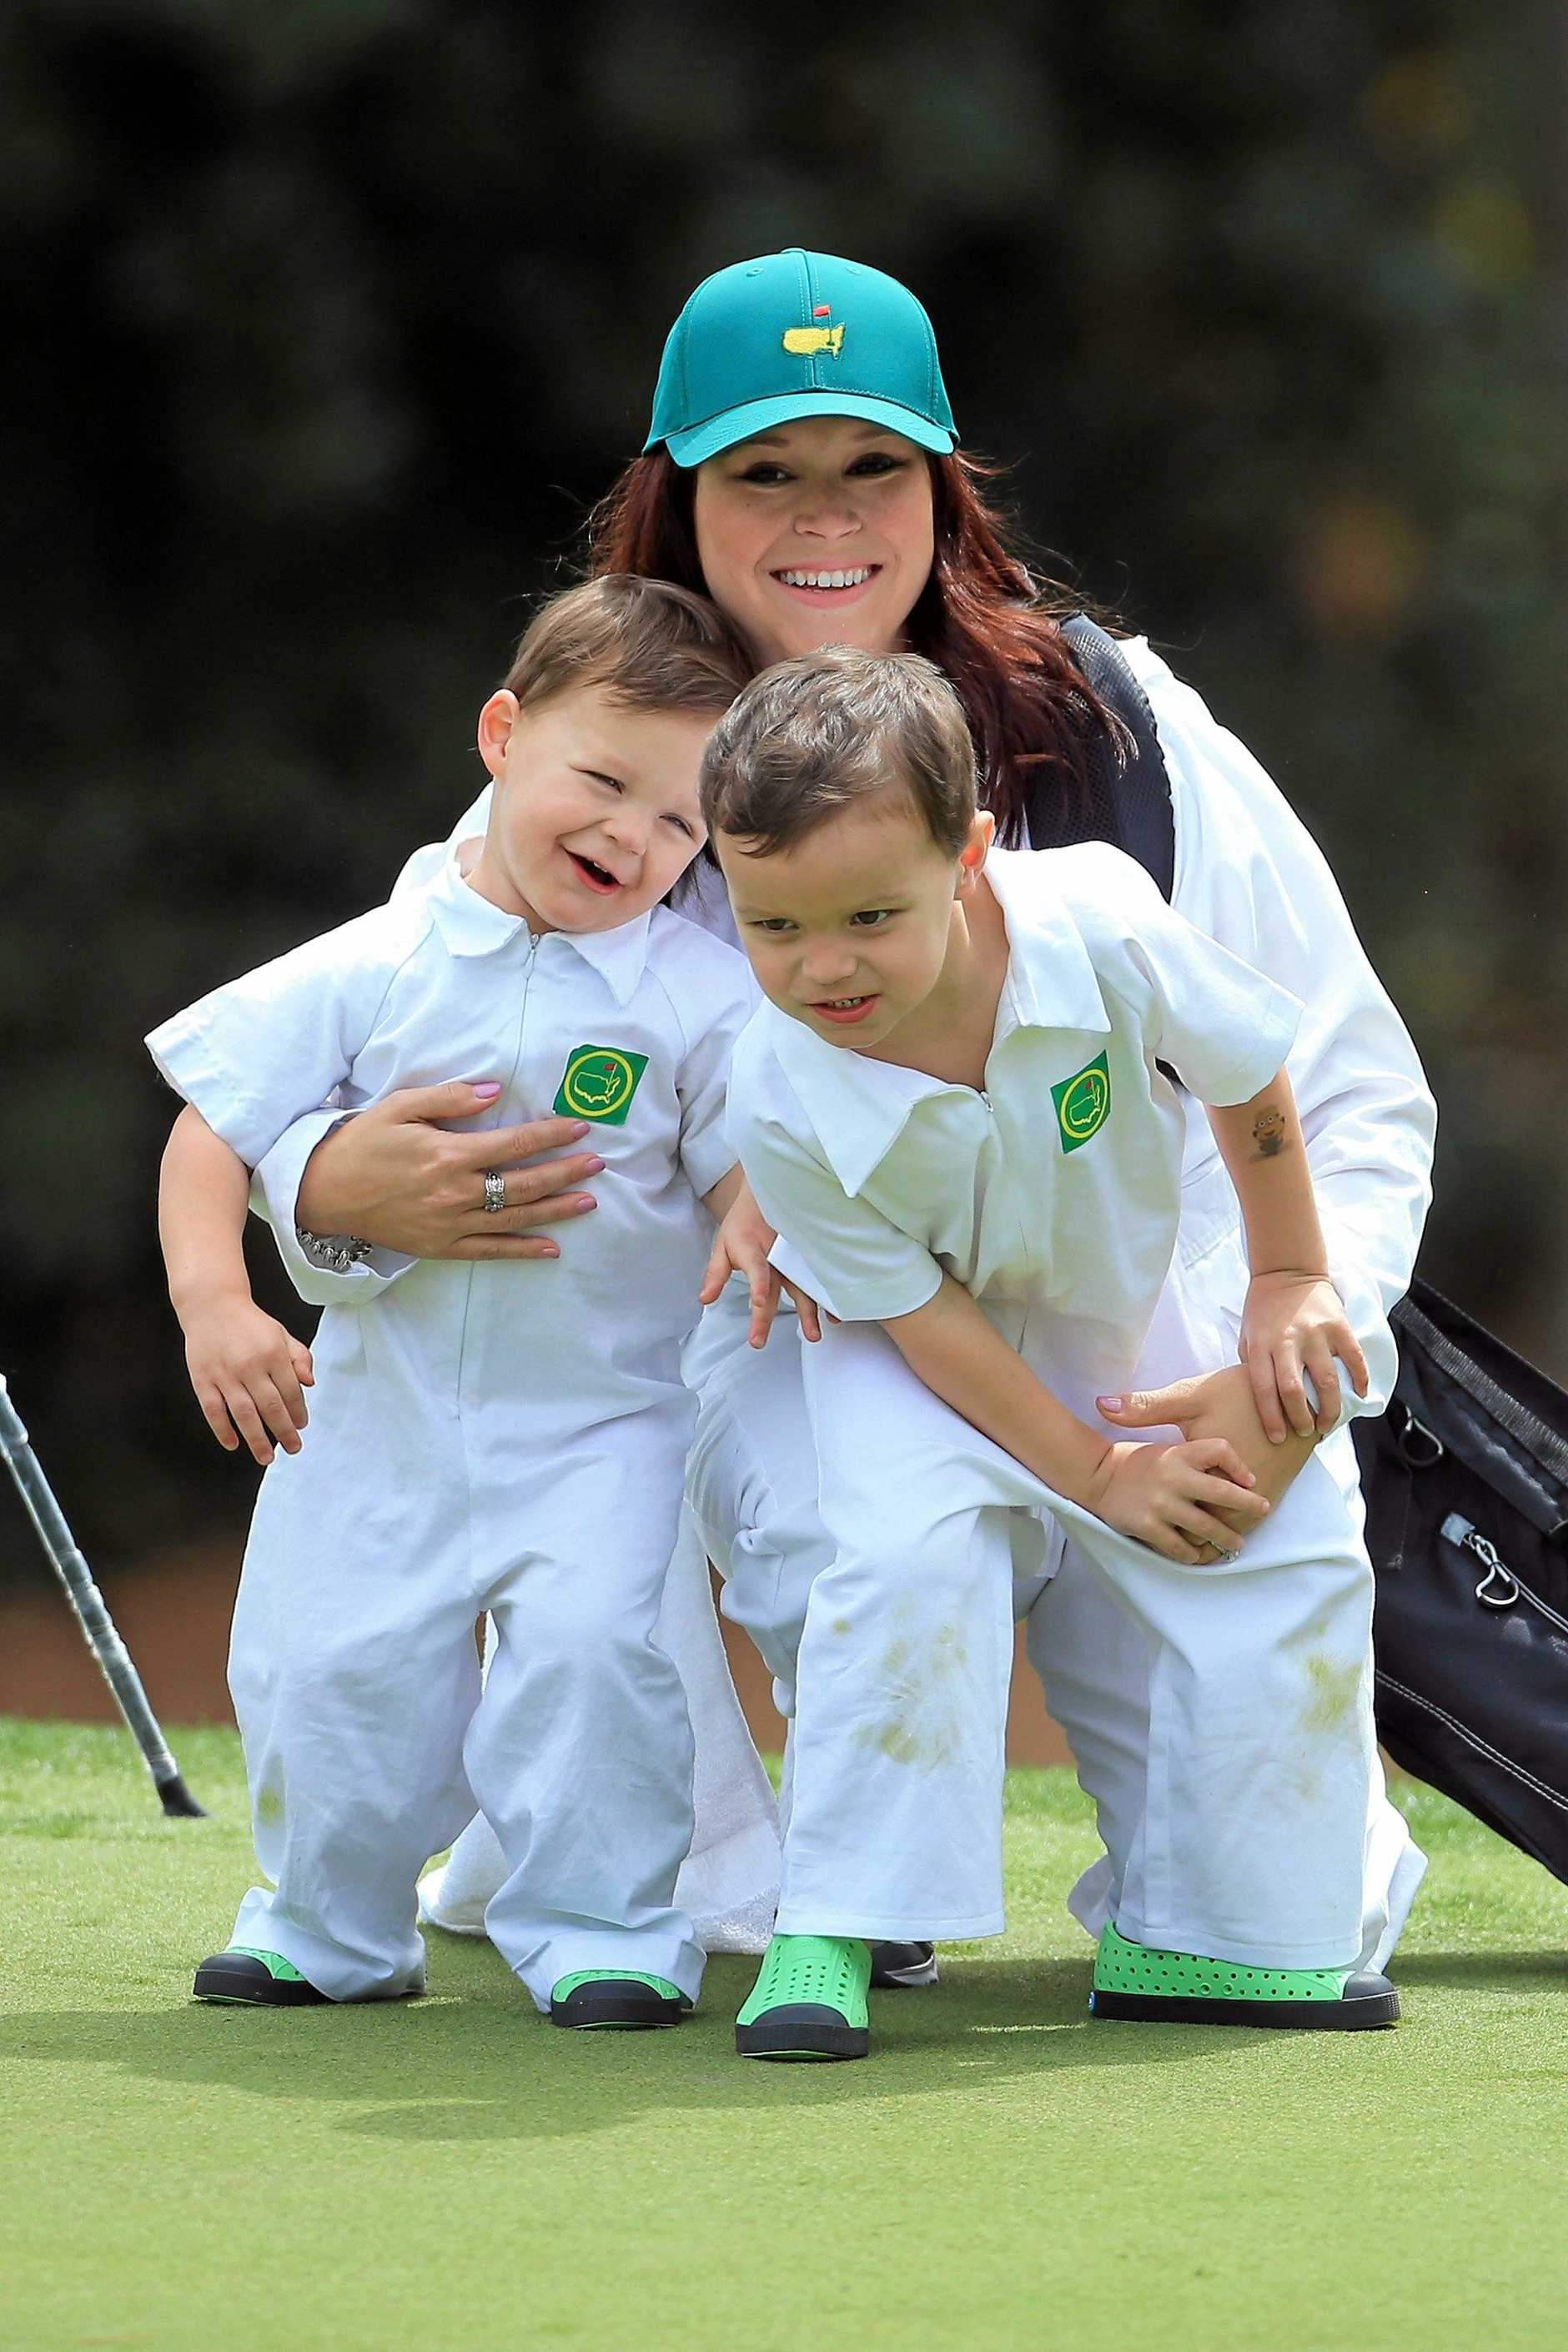 AUGUSTA, GEORGIA - APRIL 06:  Wife of Marc Leishman of Australia, Audrey Hills and their sons Oliver and Harvey attend the Par 3 Contest prior to the start of the 2016 Masters Tournament at Augusta National Golf Club on April 6, 2016 in Augusta, Georgia.  (Photo by David Cannon/Getty Images)